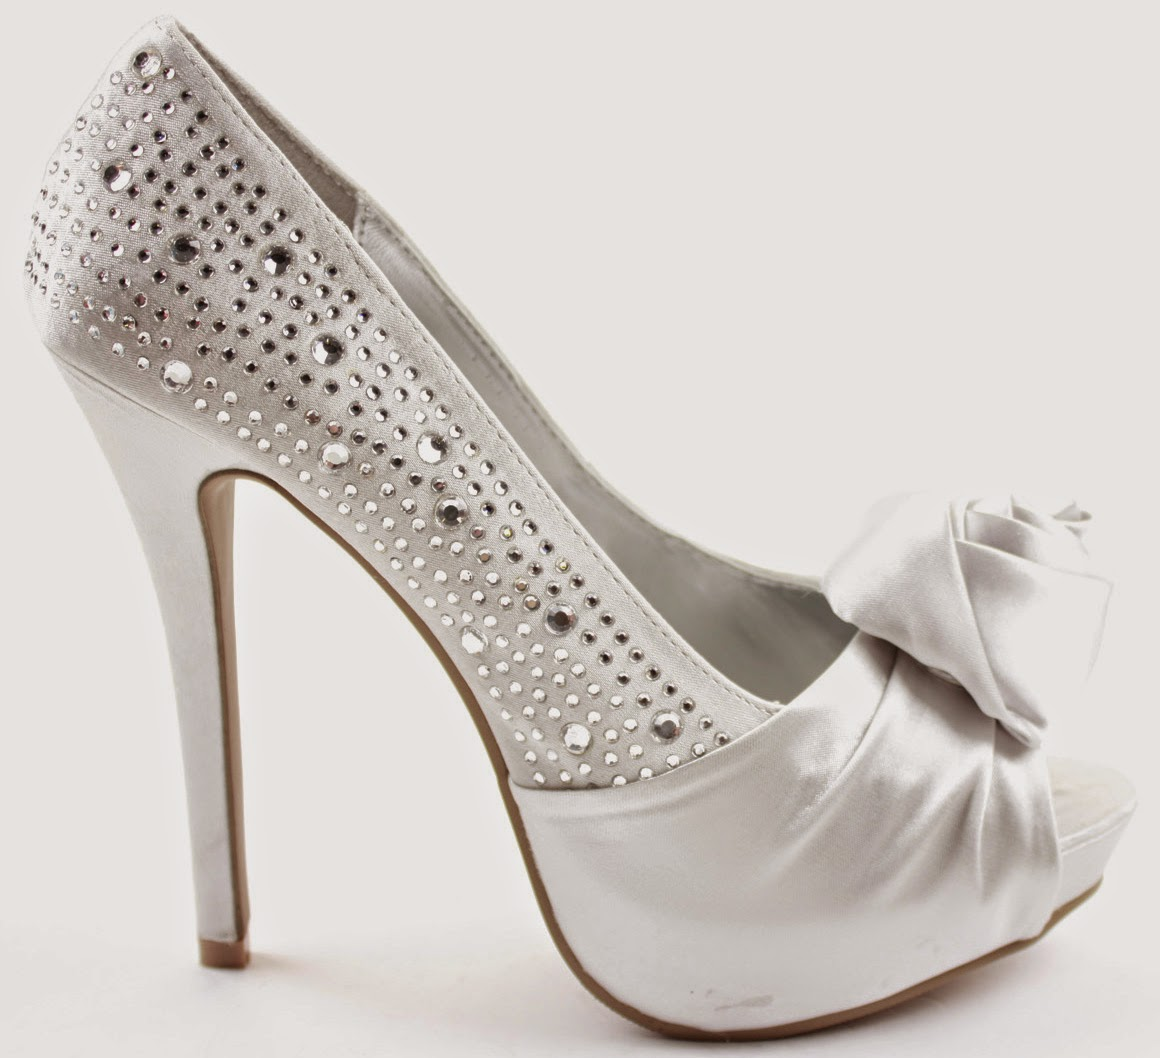 But bridal shoes aren't really fantasized about. No one is interested in Say Yes to the Shoes or can remember what Kate Hudson wore under all that Vera Wang tulle. However, the shoes you wear are a crucial part of your wedding day.